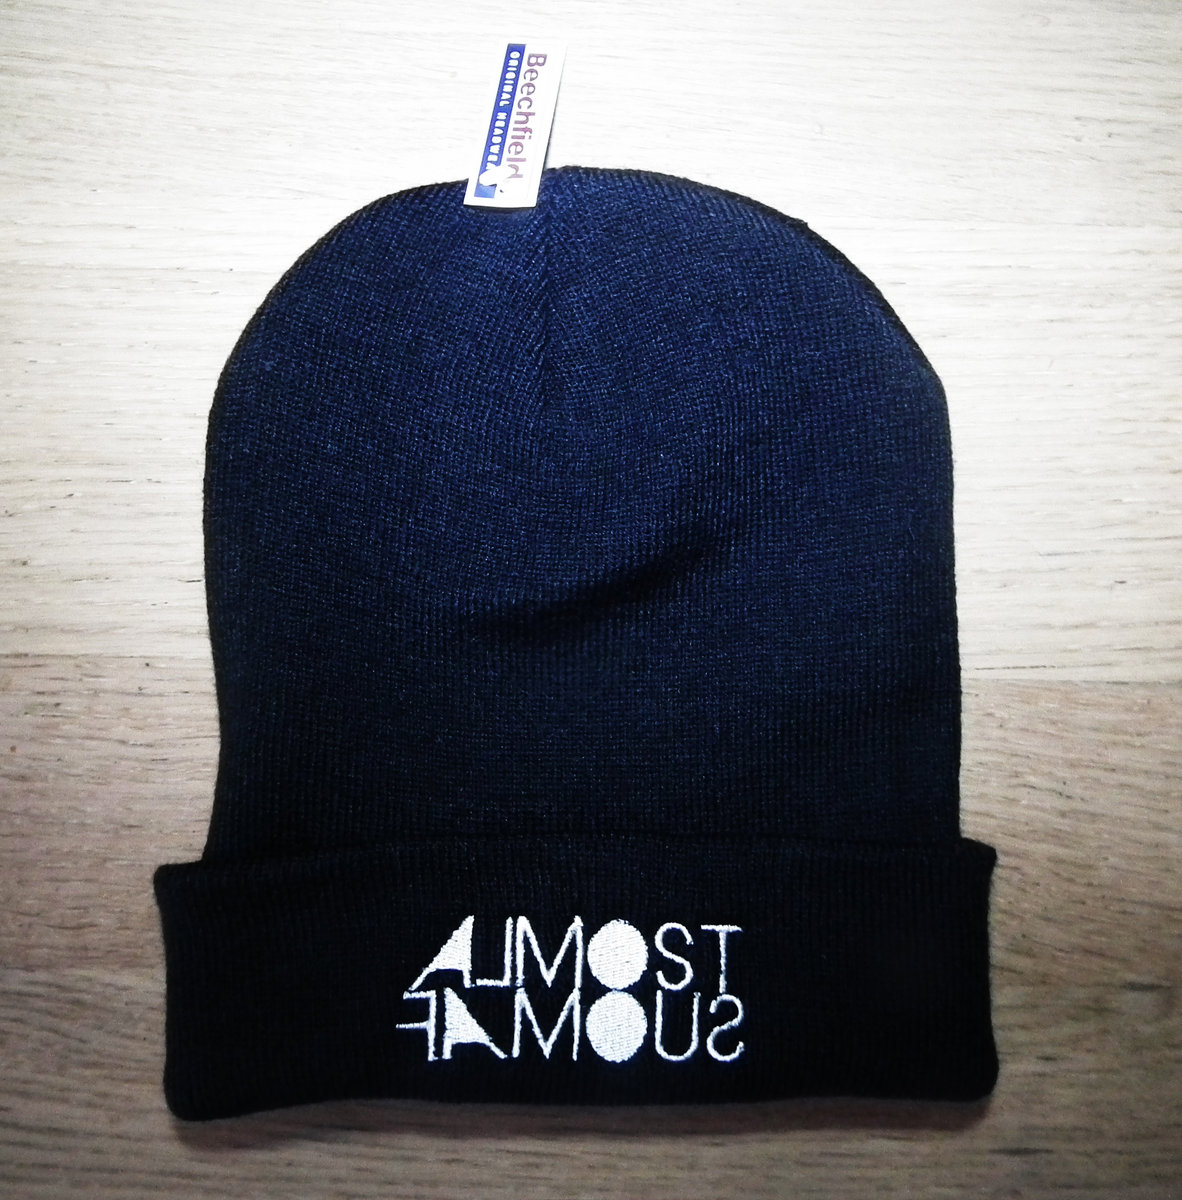 Almost Famous  Beanie Hat main photo.   01debee02d9